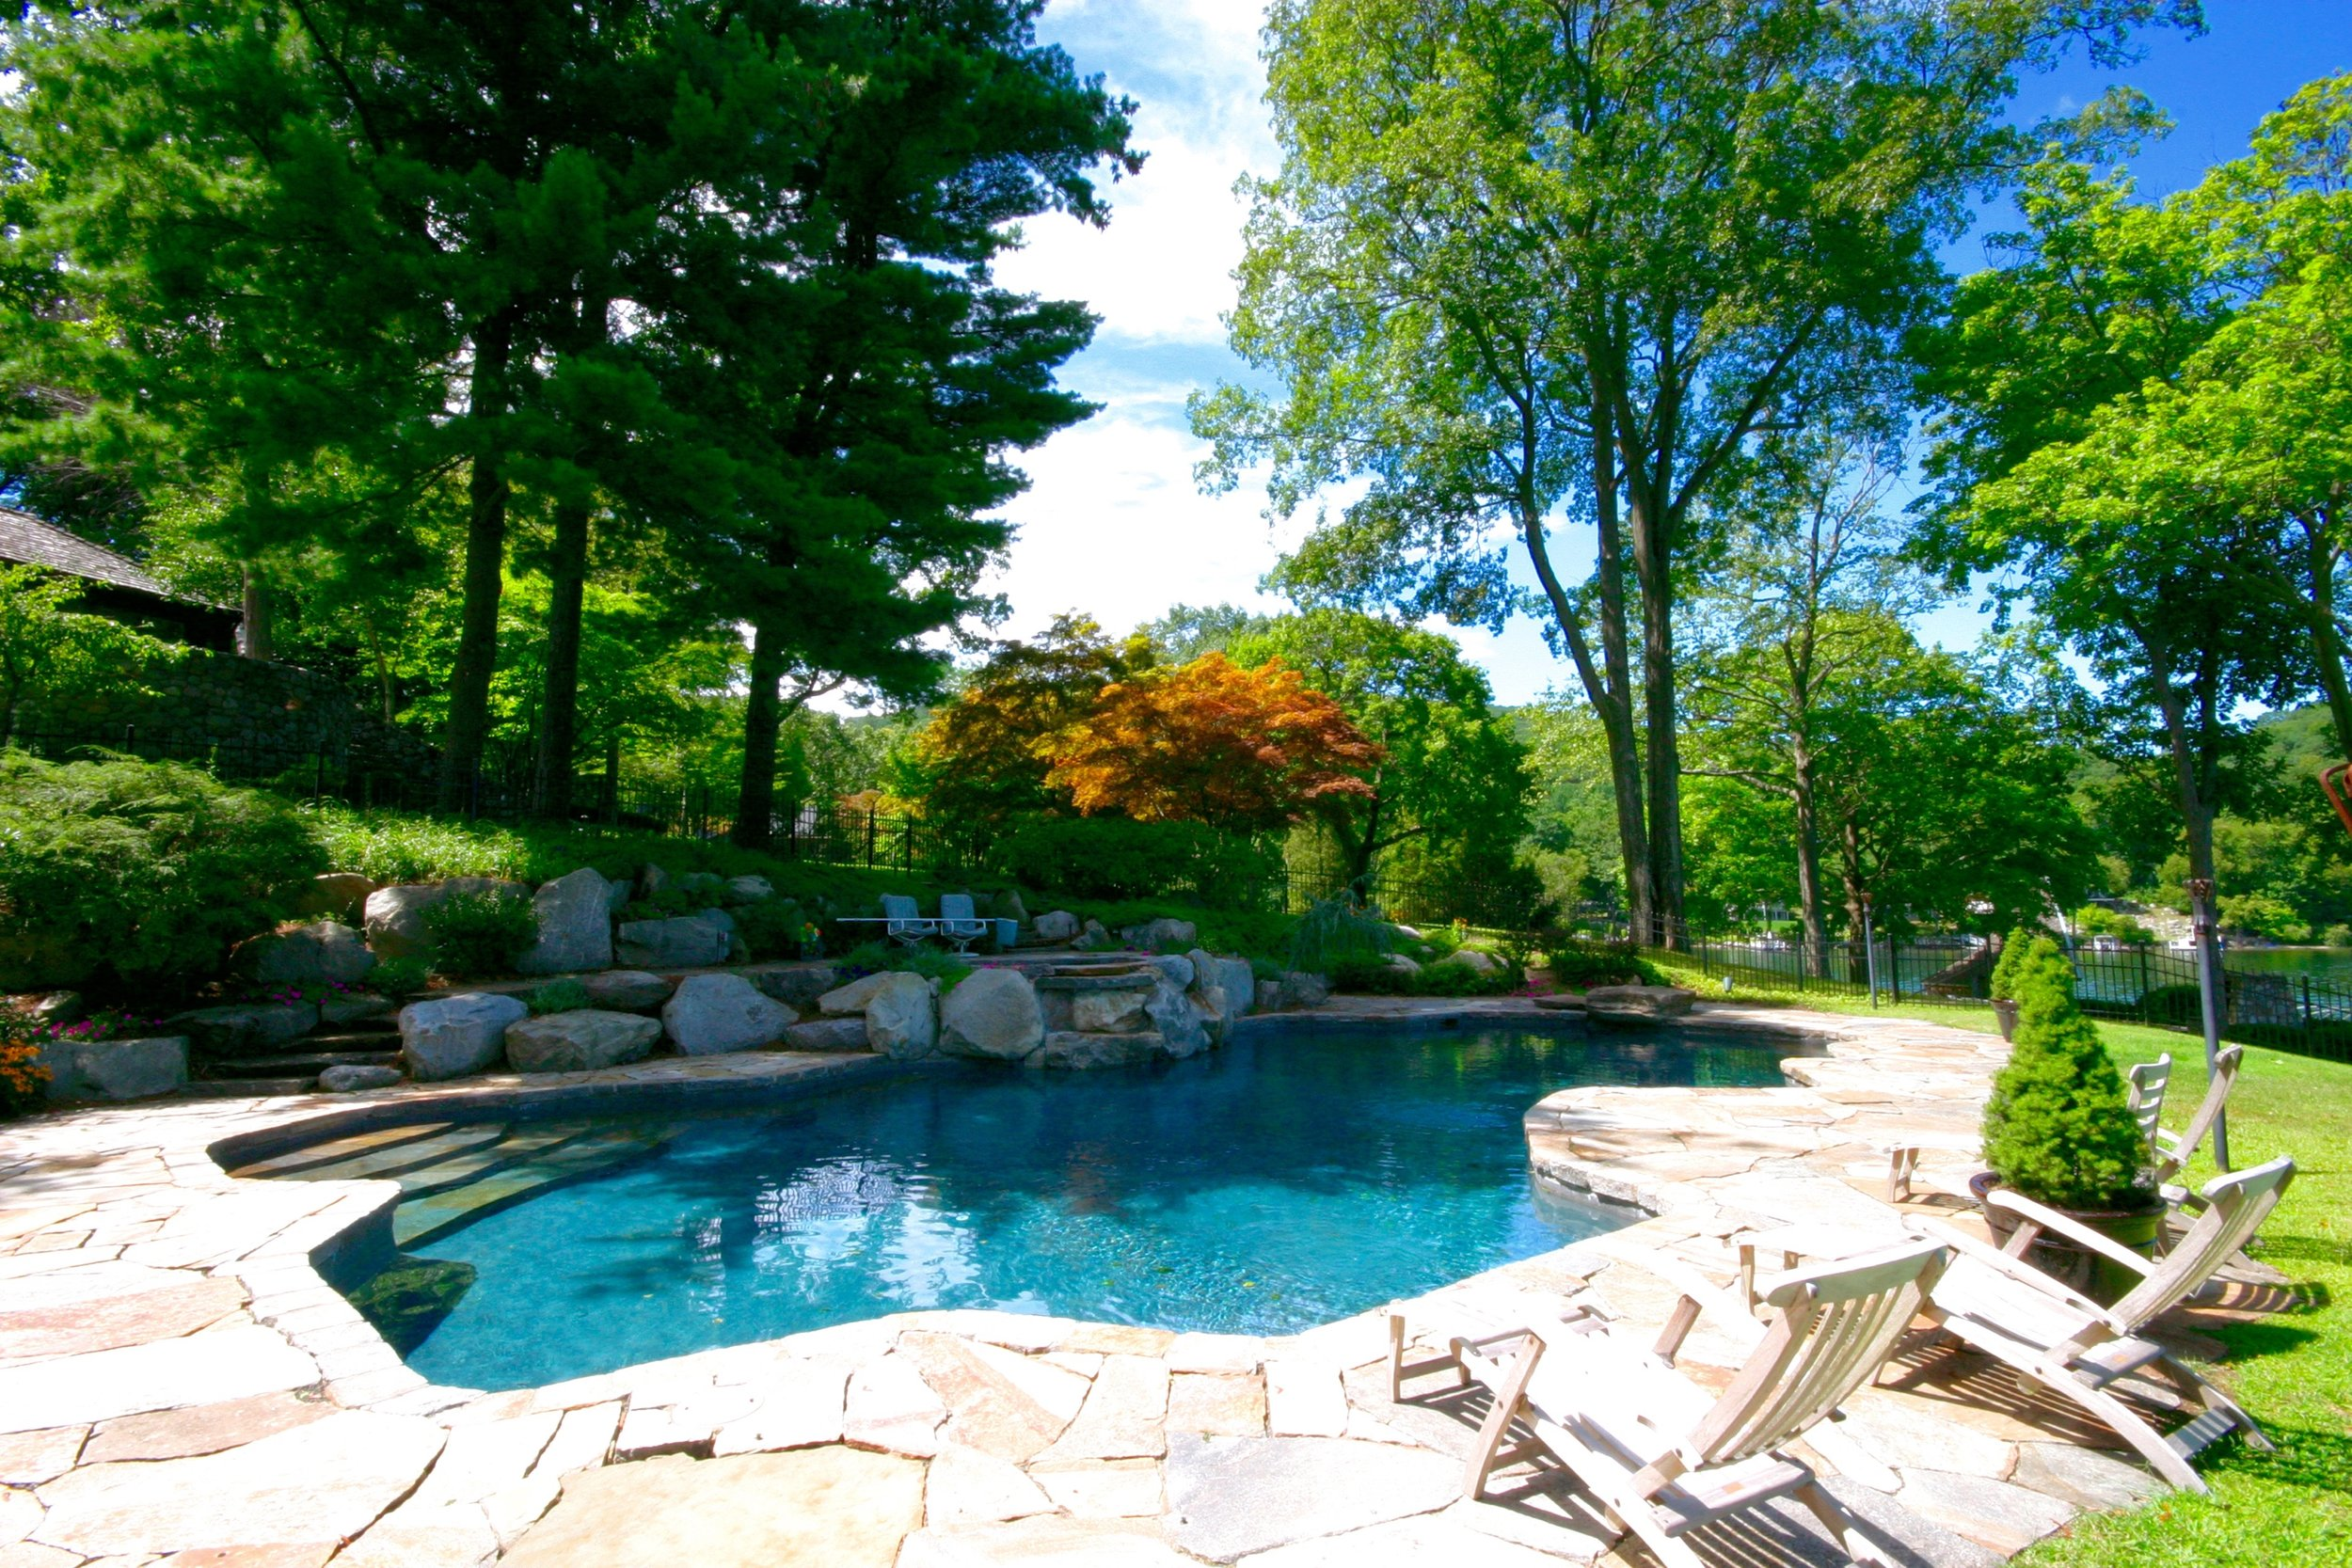 In-ground free form gunite swimming pool and spa